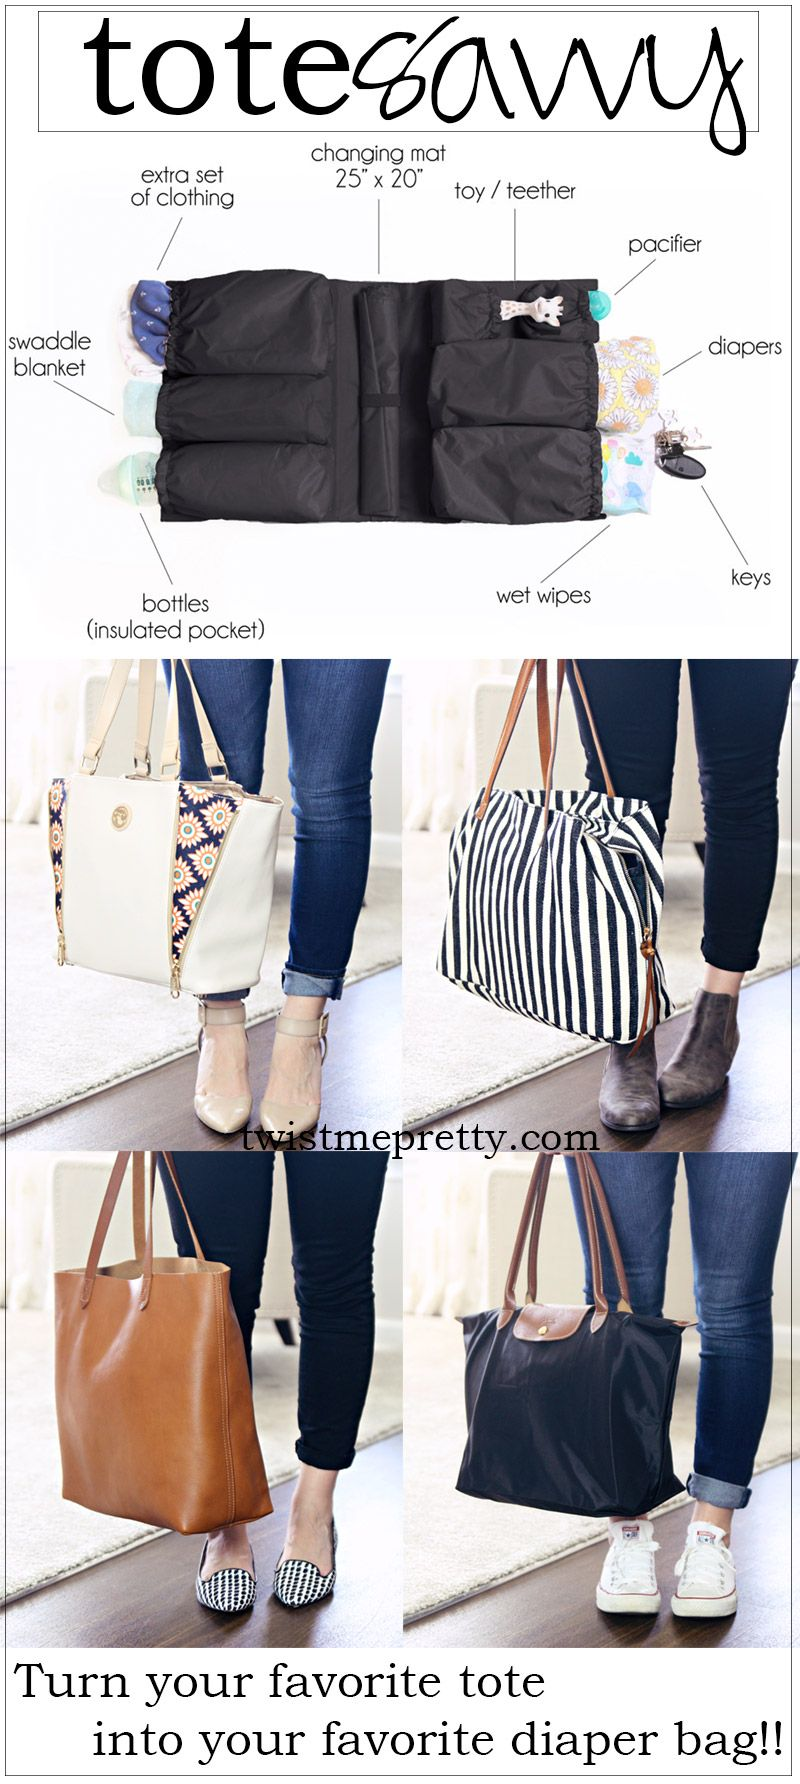 Tote Savvy Turning Your Favorite Bag Into